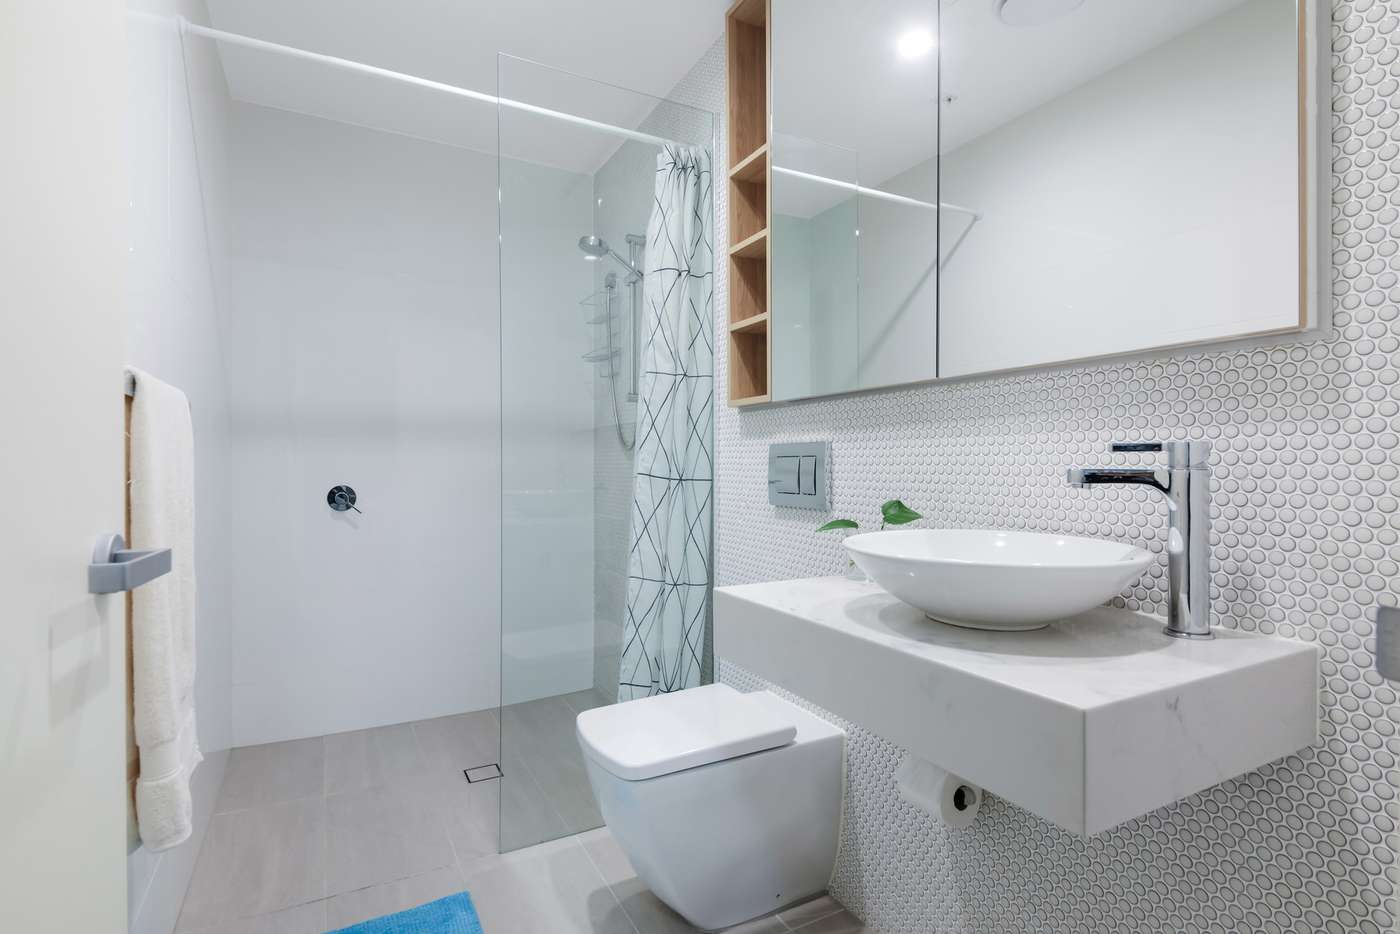 Fifth view of Homely apartment listing, 1106/46 Savona Drive, Wentworth Point NSW 2127